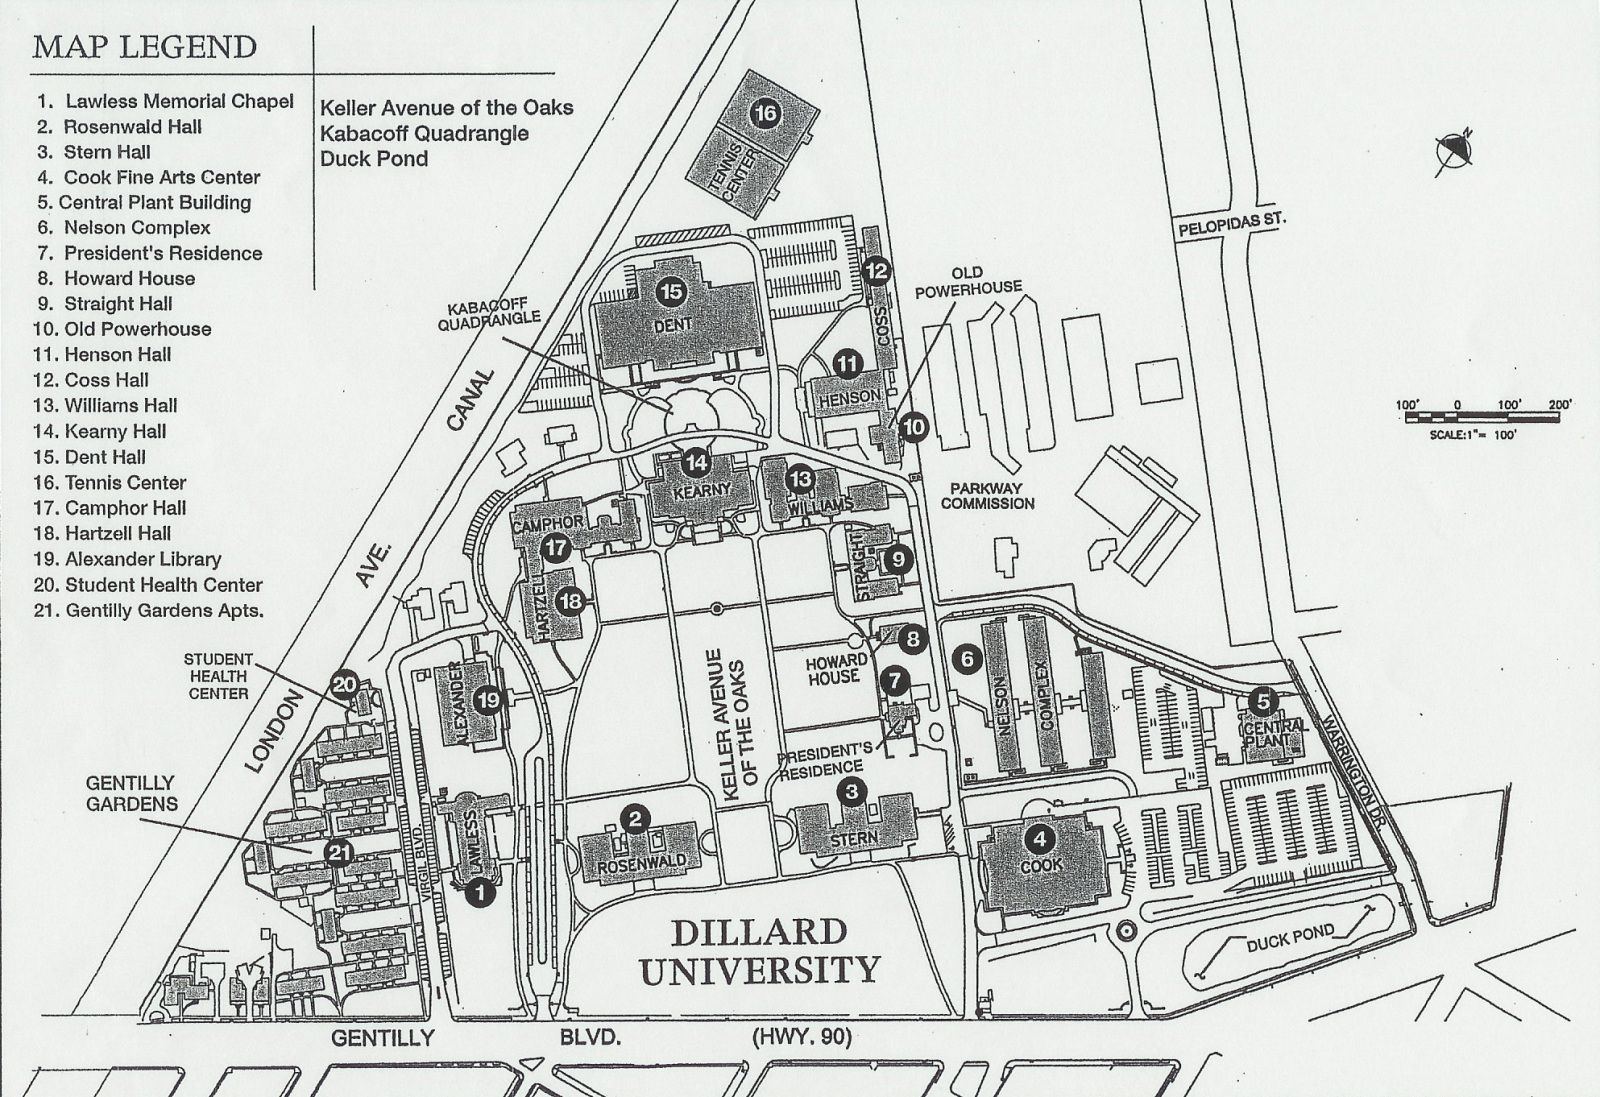 Suno Campus Map.Campus Map Dillard University Hbcus Oklahoma Missouri Arkansas